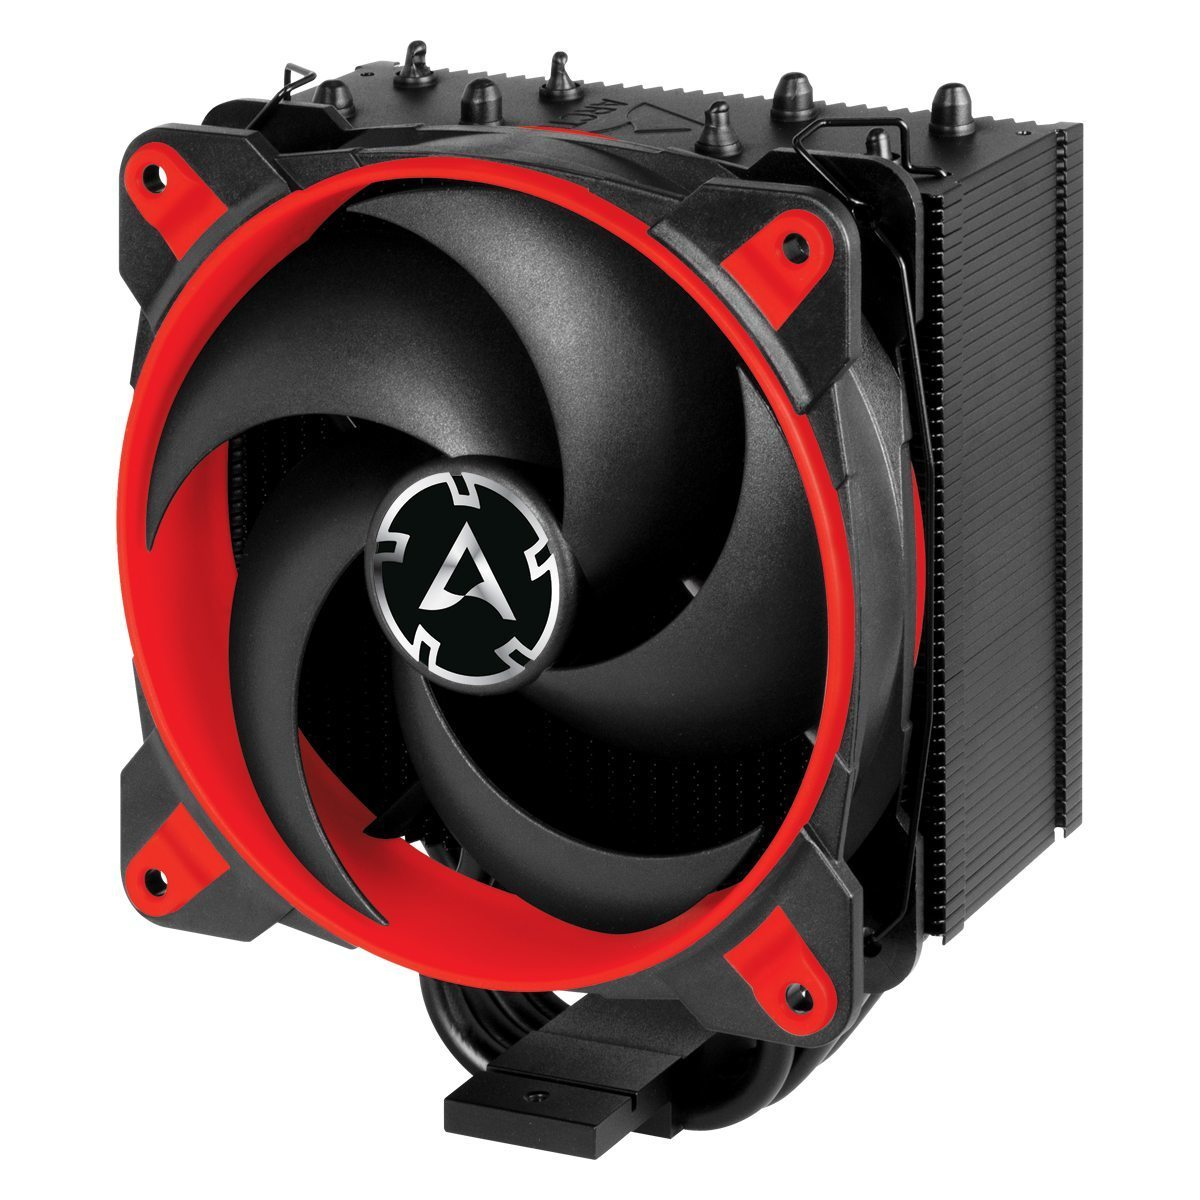 Freezer 34 eSports - Red - LGA2066/LGA2011/LGA1151/AM4